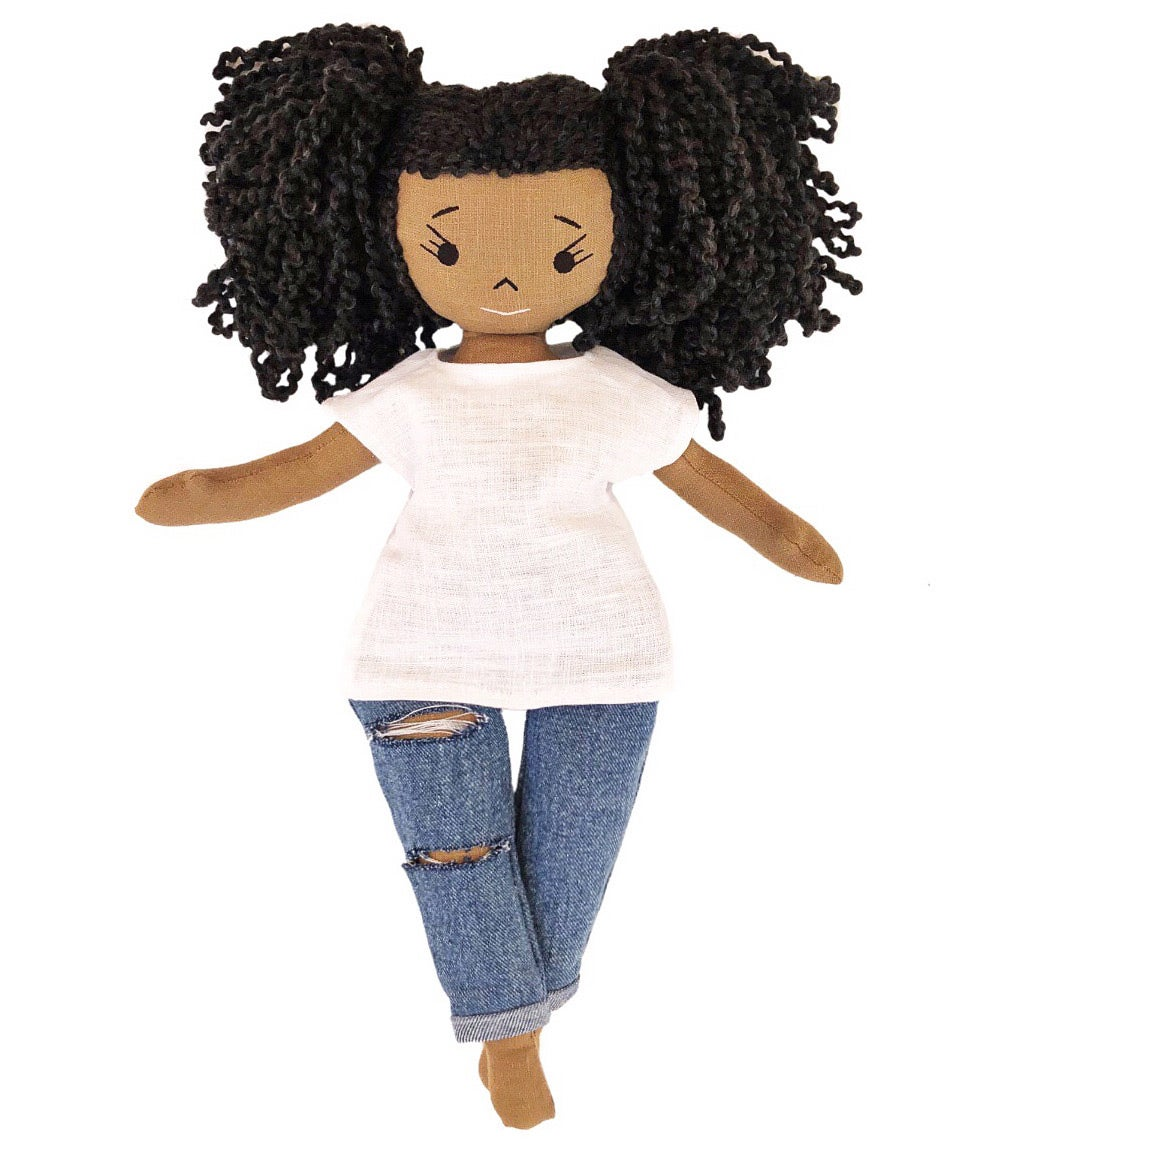 Zara Handmade More to Love Doll (PLEASE NOTE: THIS ORDER WILL SHIP ON OR BEFORE NOV 30TH)